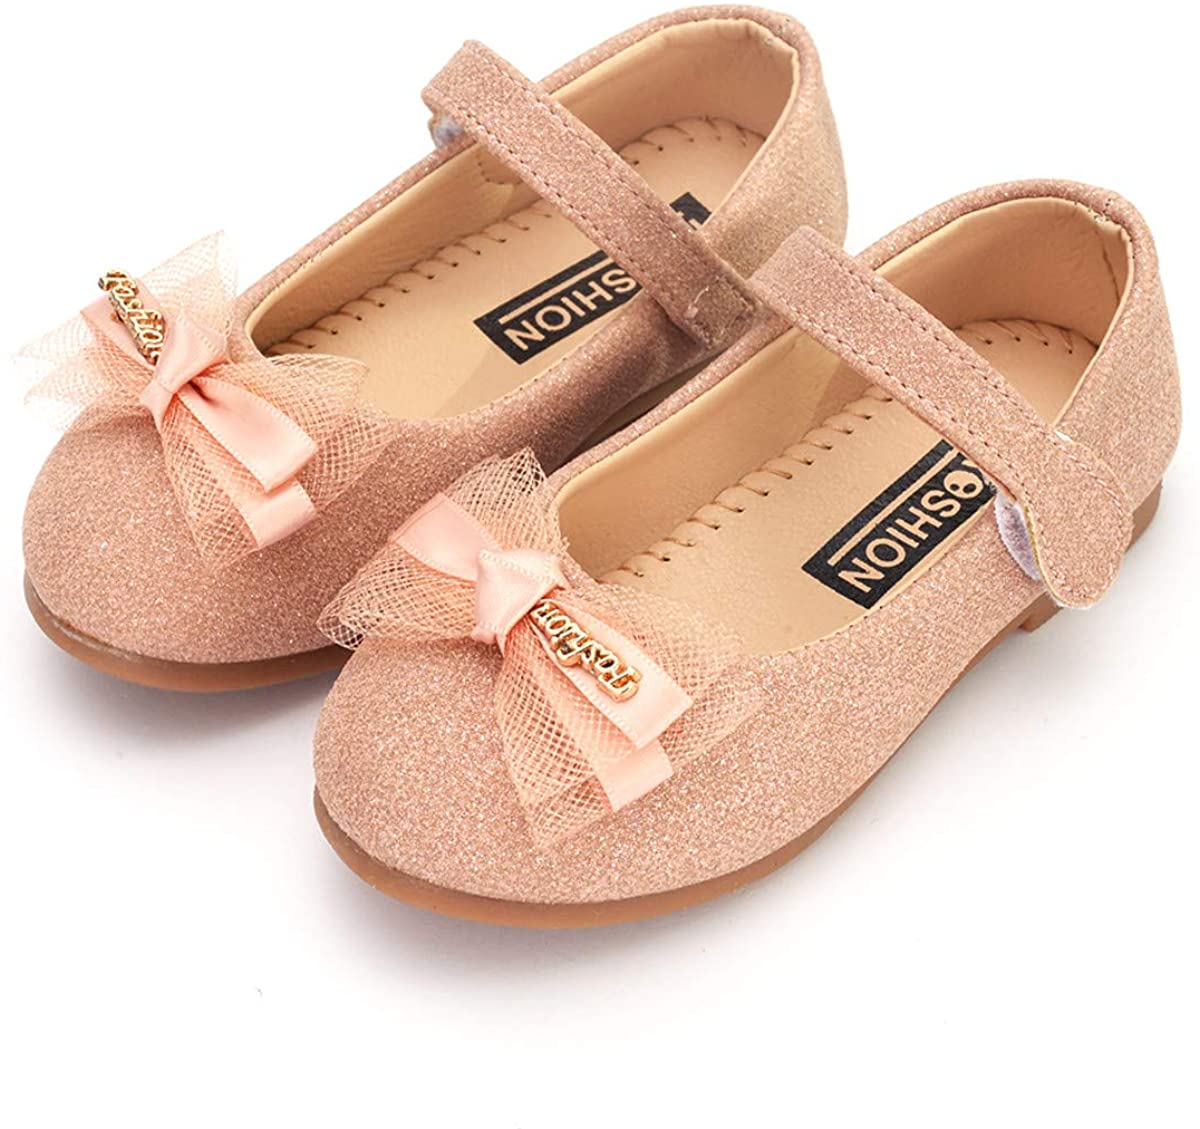 ENERCAKE Toddler Girls Shoes Mary Jane Ballerina Flats Slip-on Dress Shoes for Little Girls